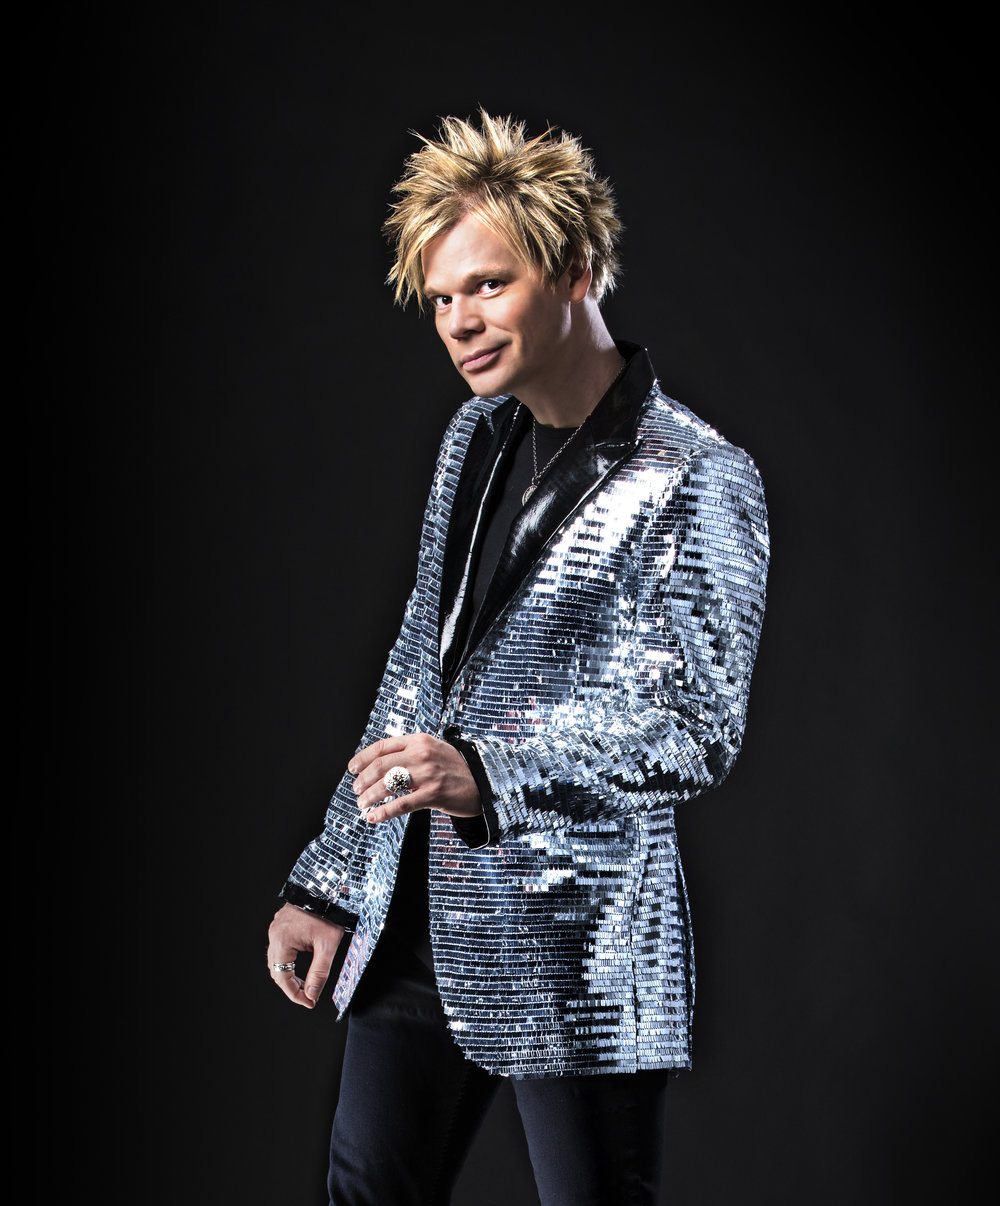 Silver Jacket Medium Crop.jpg